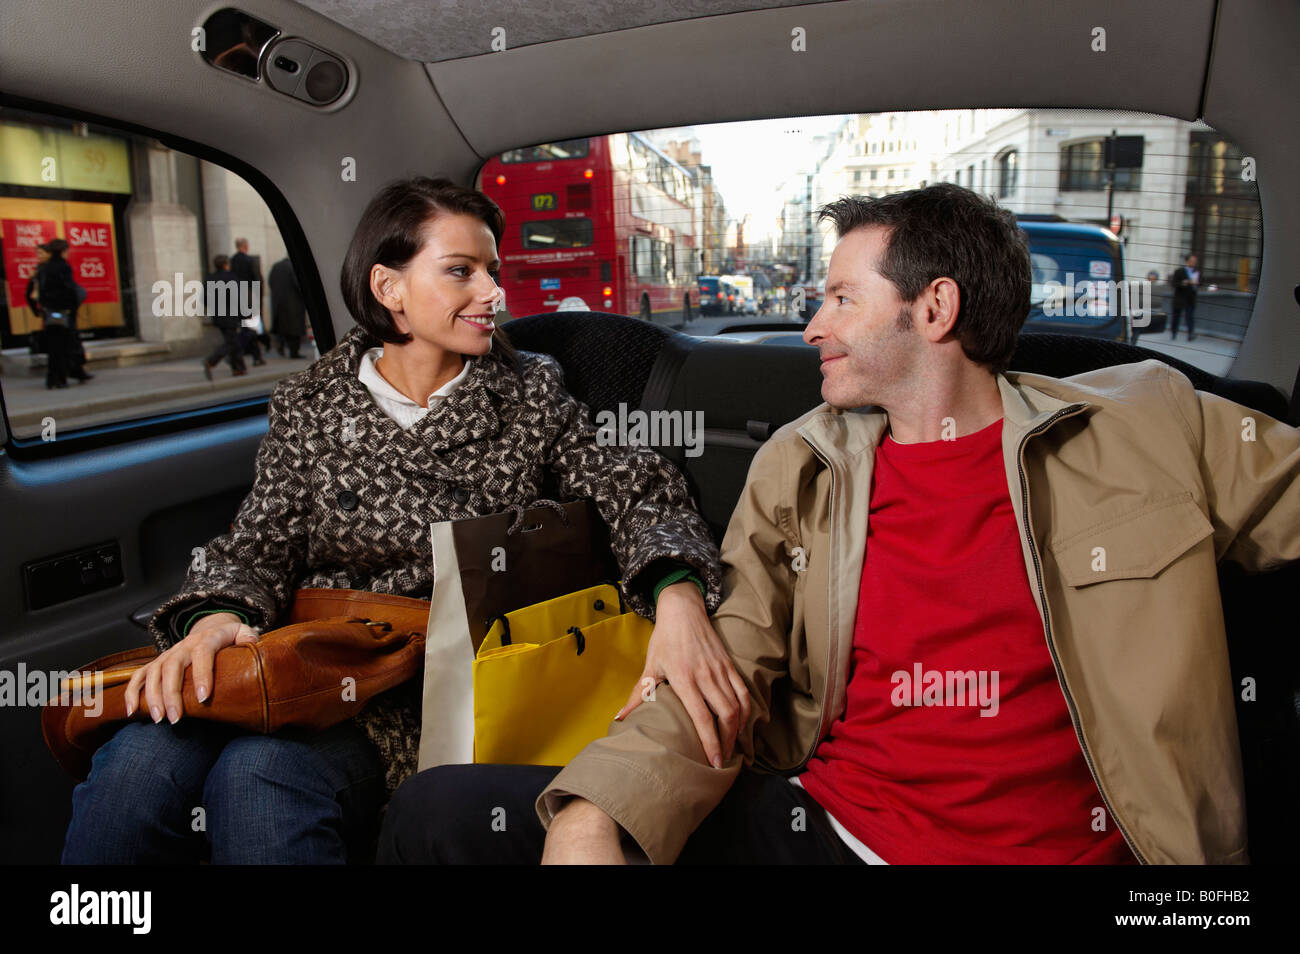 Couple in London taxi with bags - Stock Image